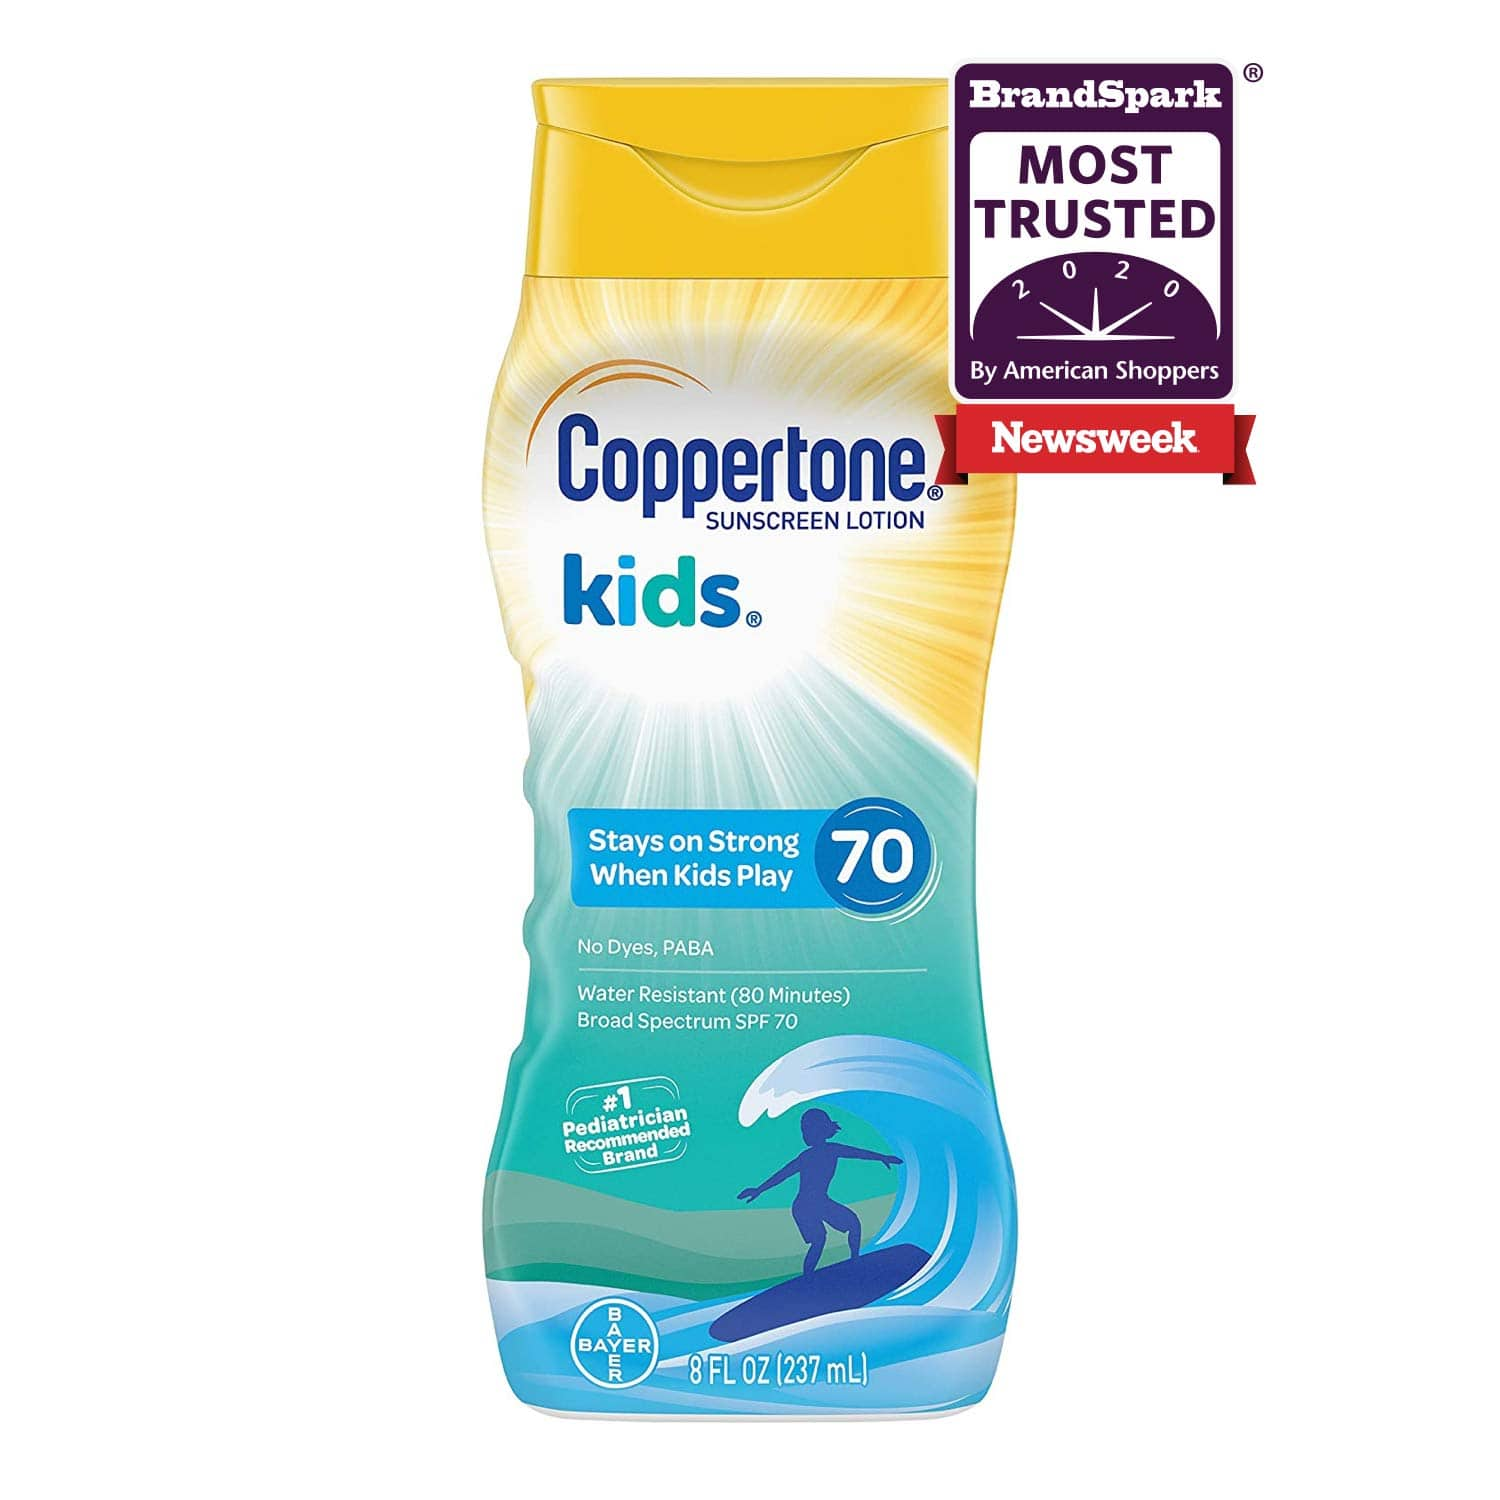 Coppertone KIDS Water-Resistant Sunscreen Lotion Broad Spectrum SPF 70 8 oz. $6 at Amazon